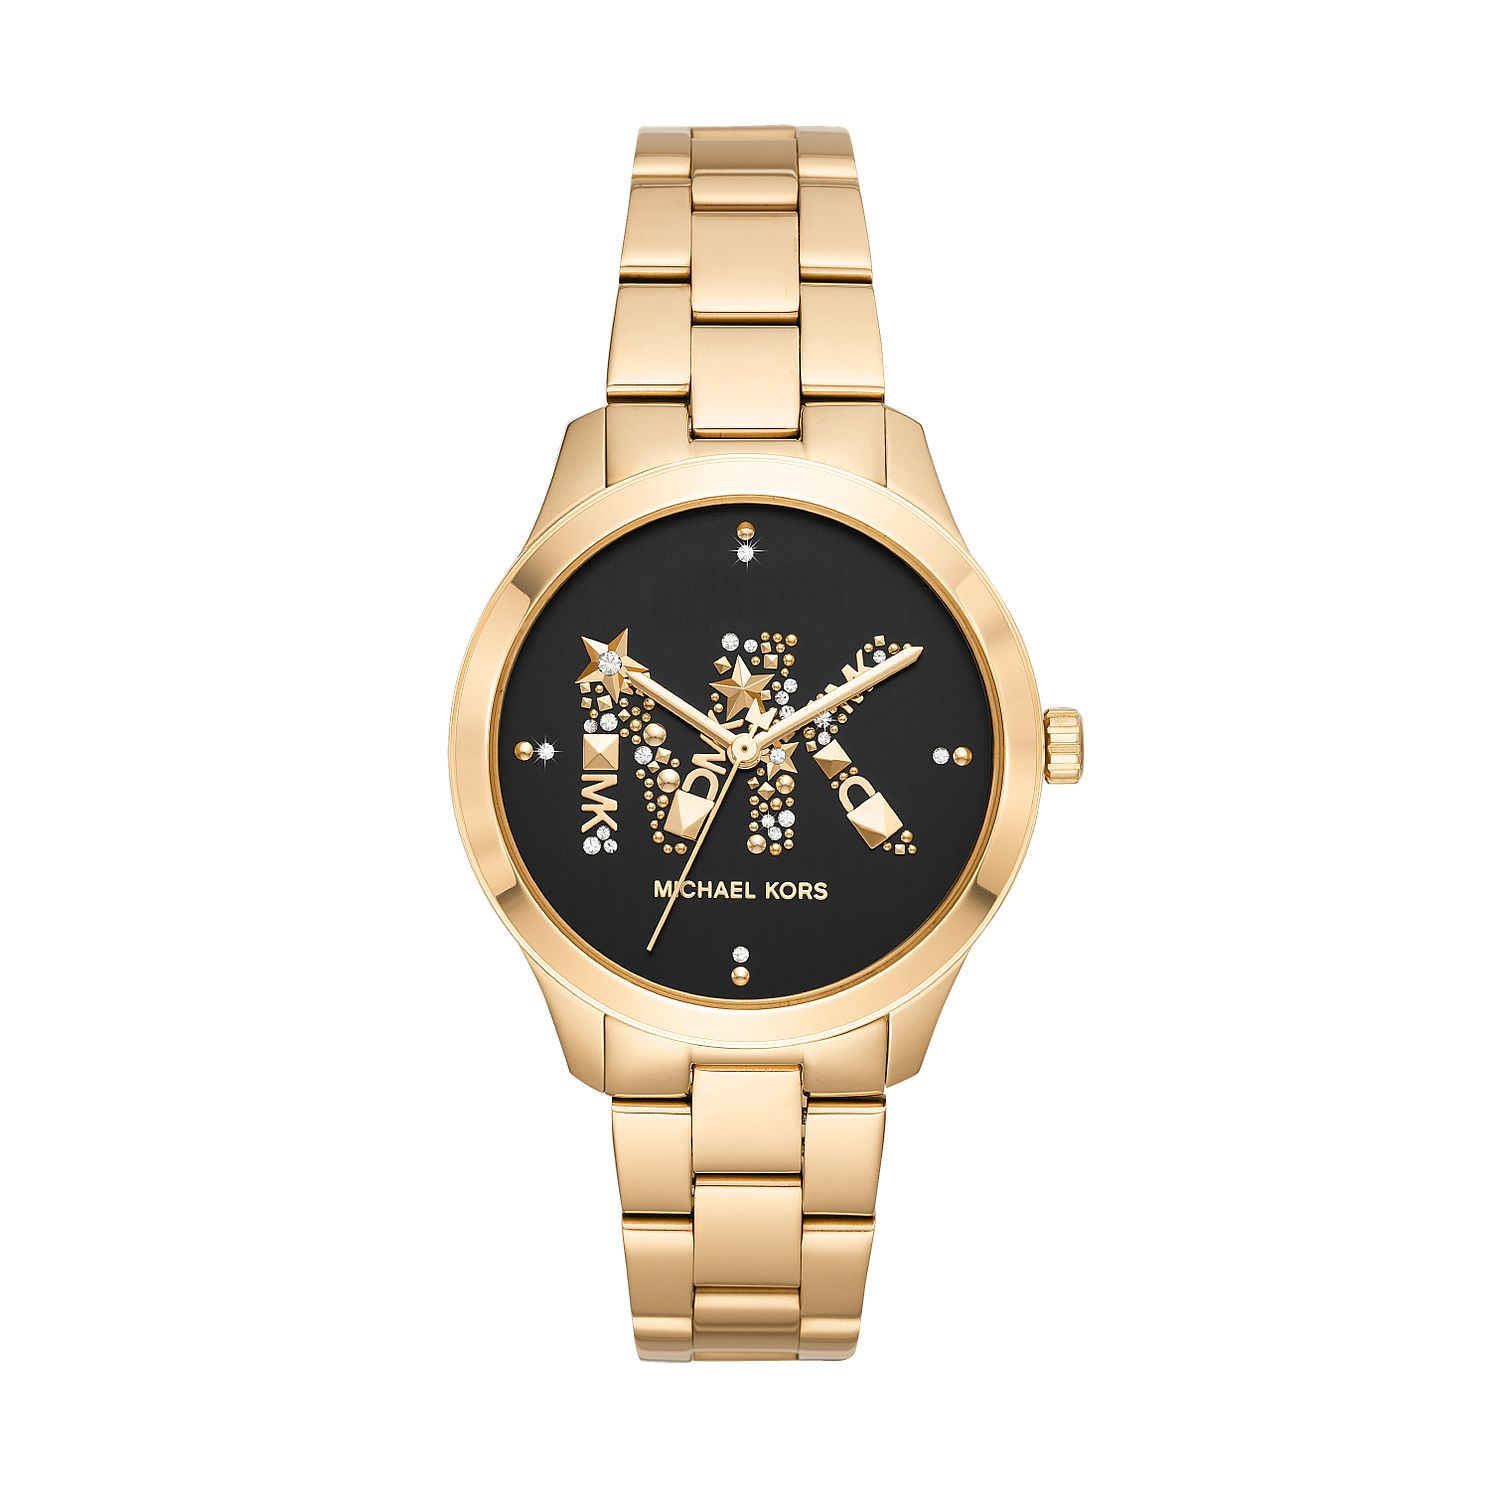 Michael Kors Runway Ladies' Yellow Gold Tone Bracelet Watch - Product number 2295660